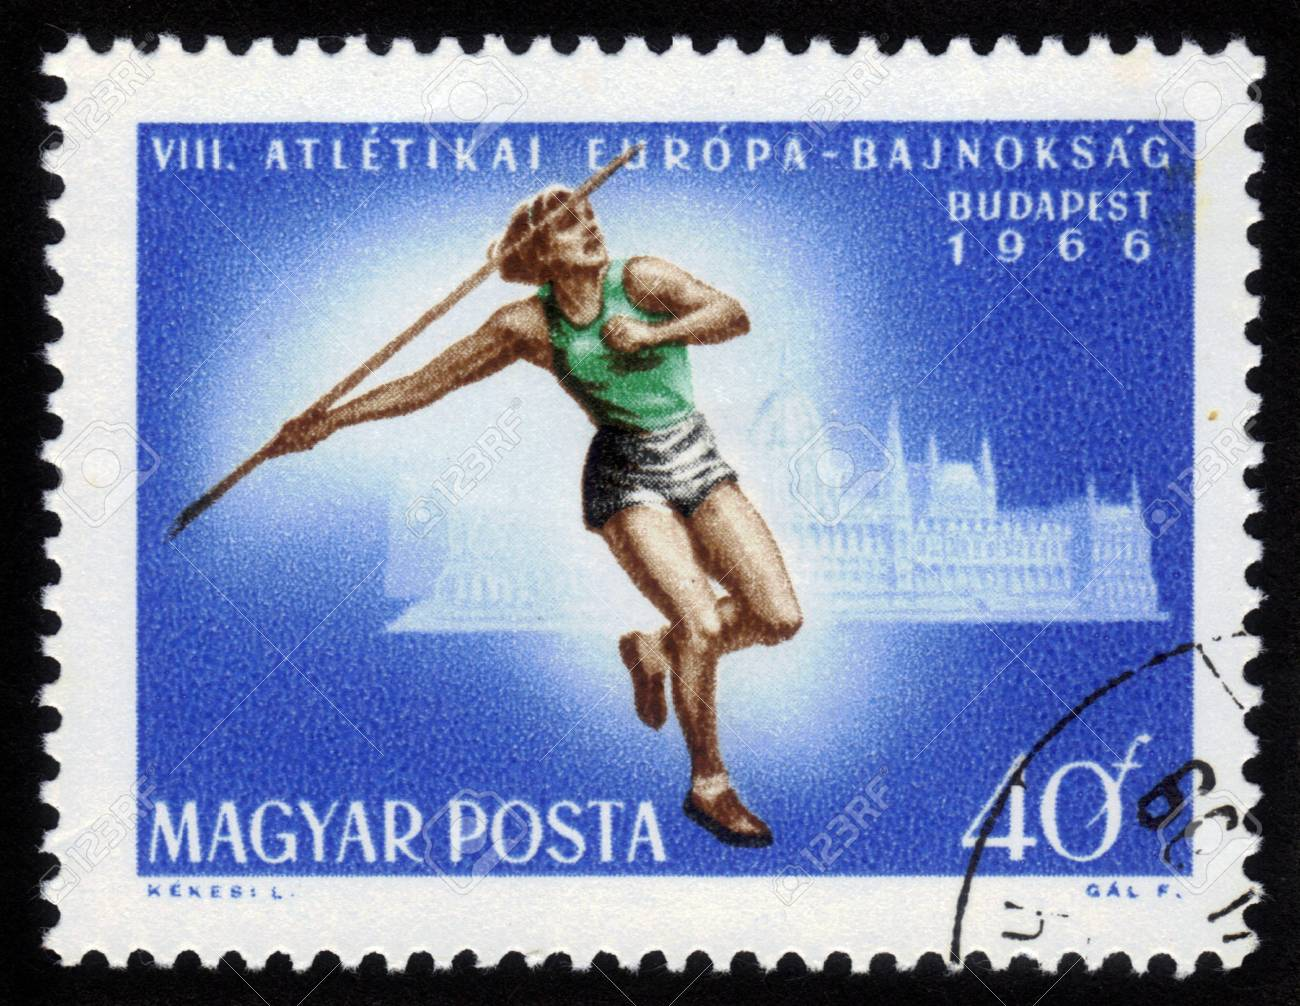 HUNGARY - CIRCA 1966: A stamp printed in Hungary shows javelin thrower with inscription and name of series